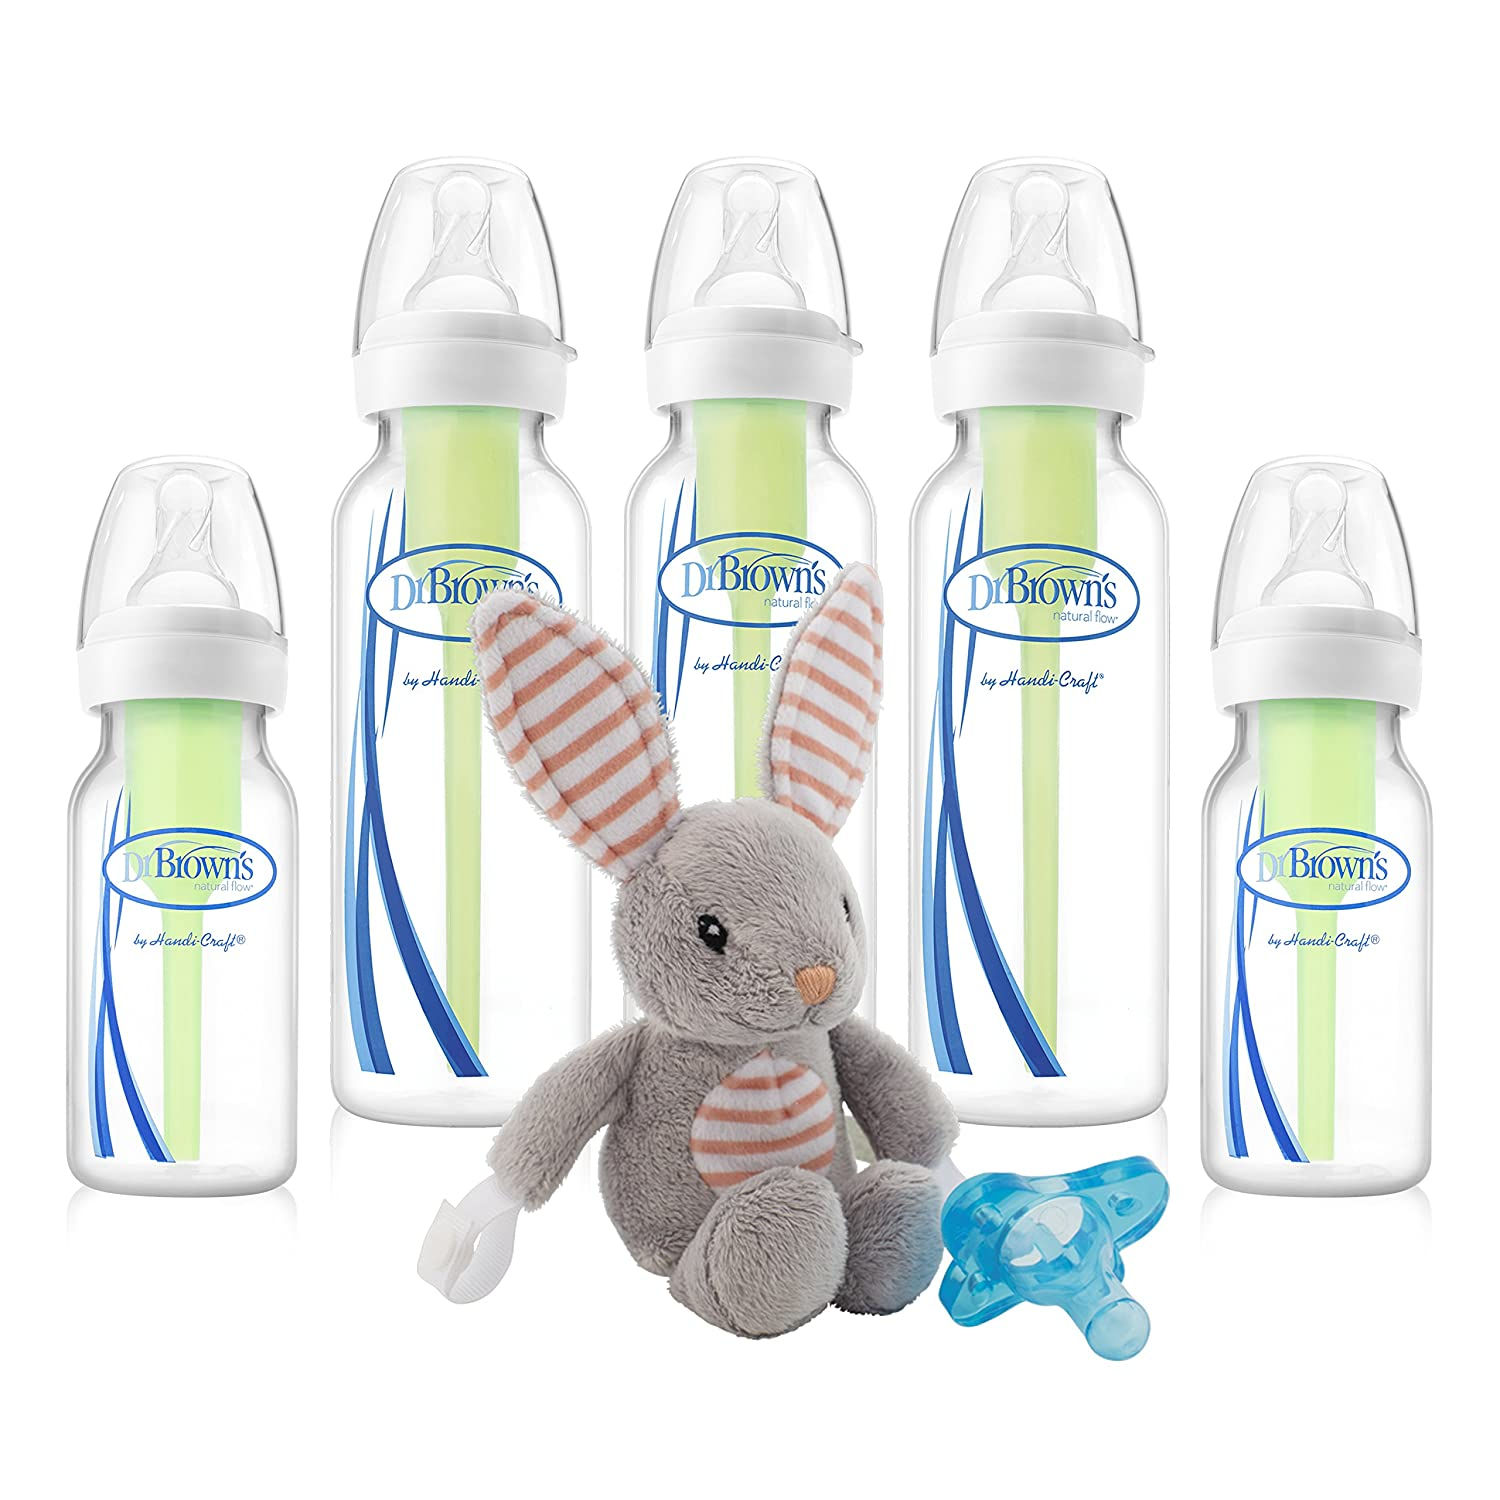 Dr. Brown's Options Baby Bottles Lovey Pacifier Set, Blue Bunny Dr. Brown' s SB05001